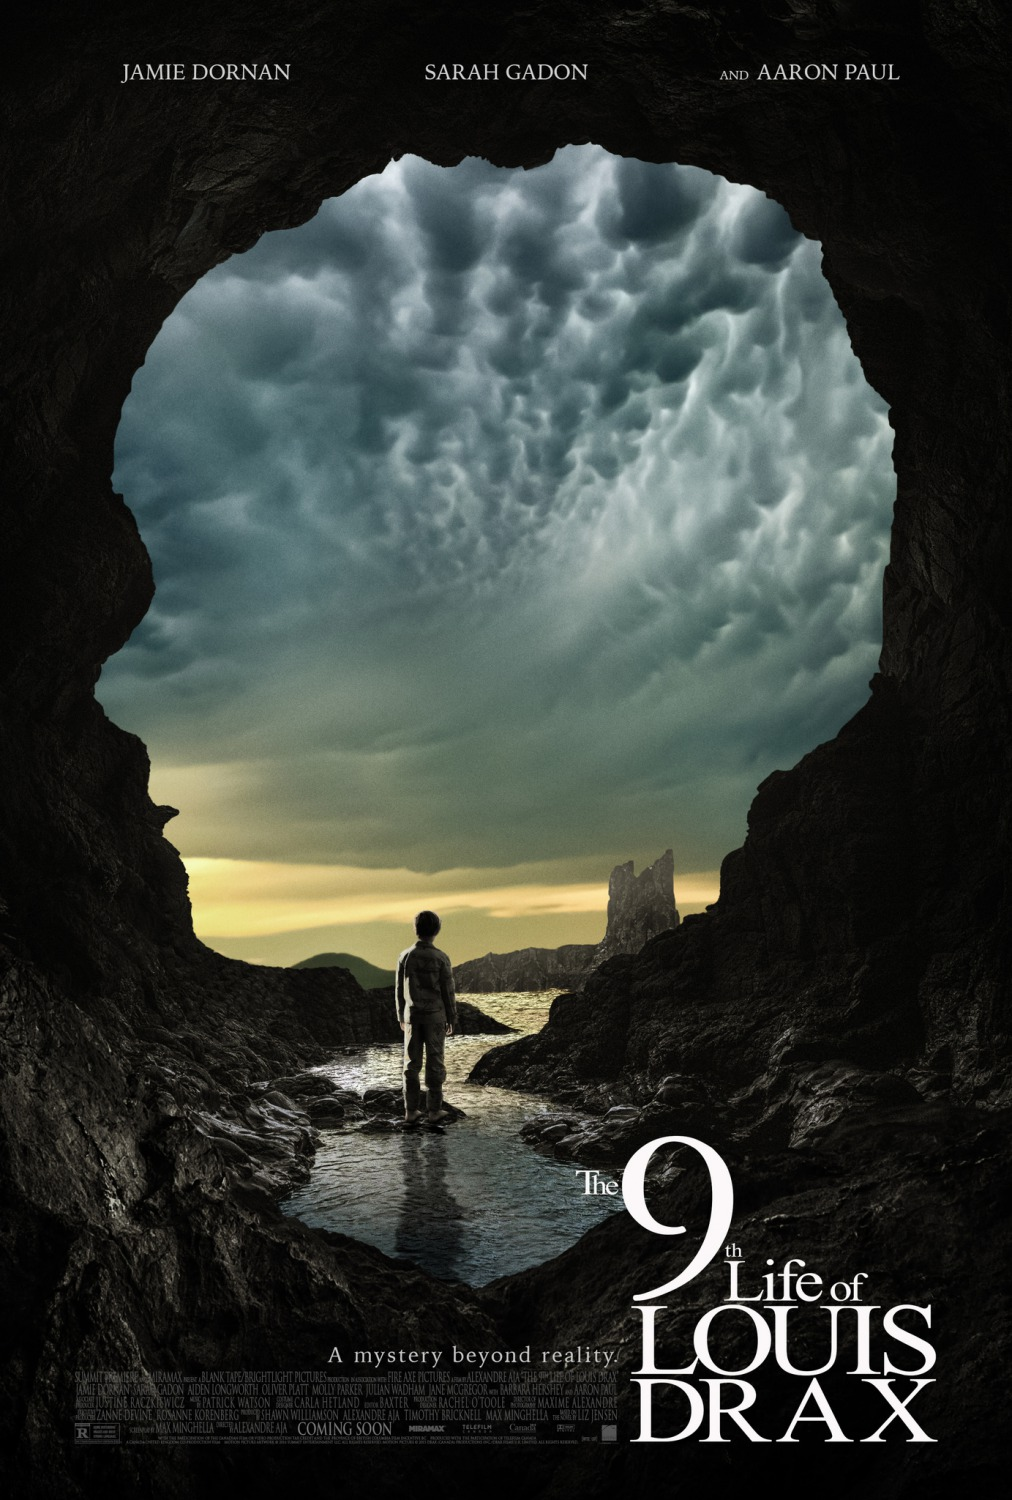 9th Life Of Louis Drax film review